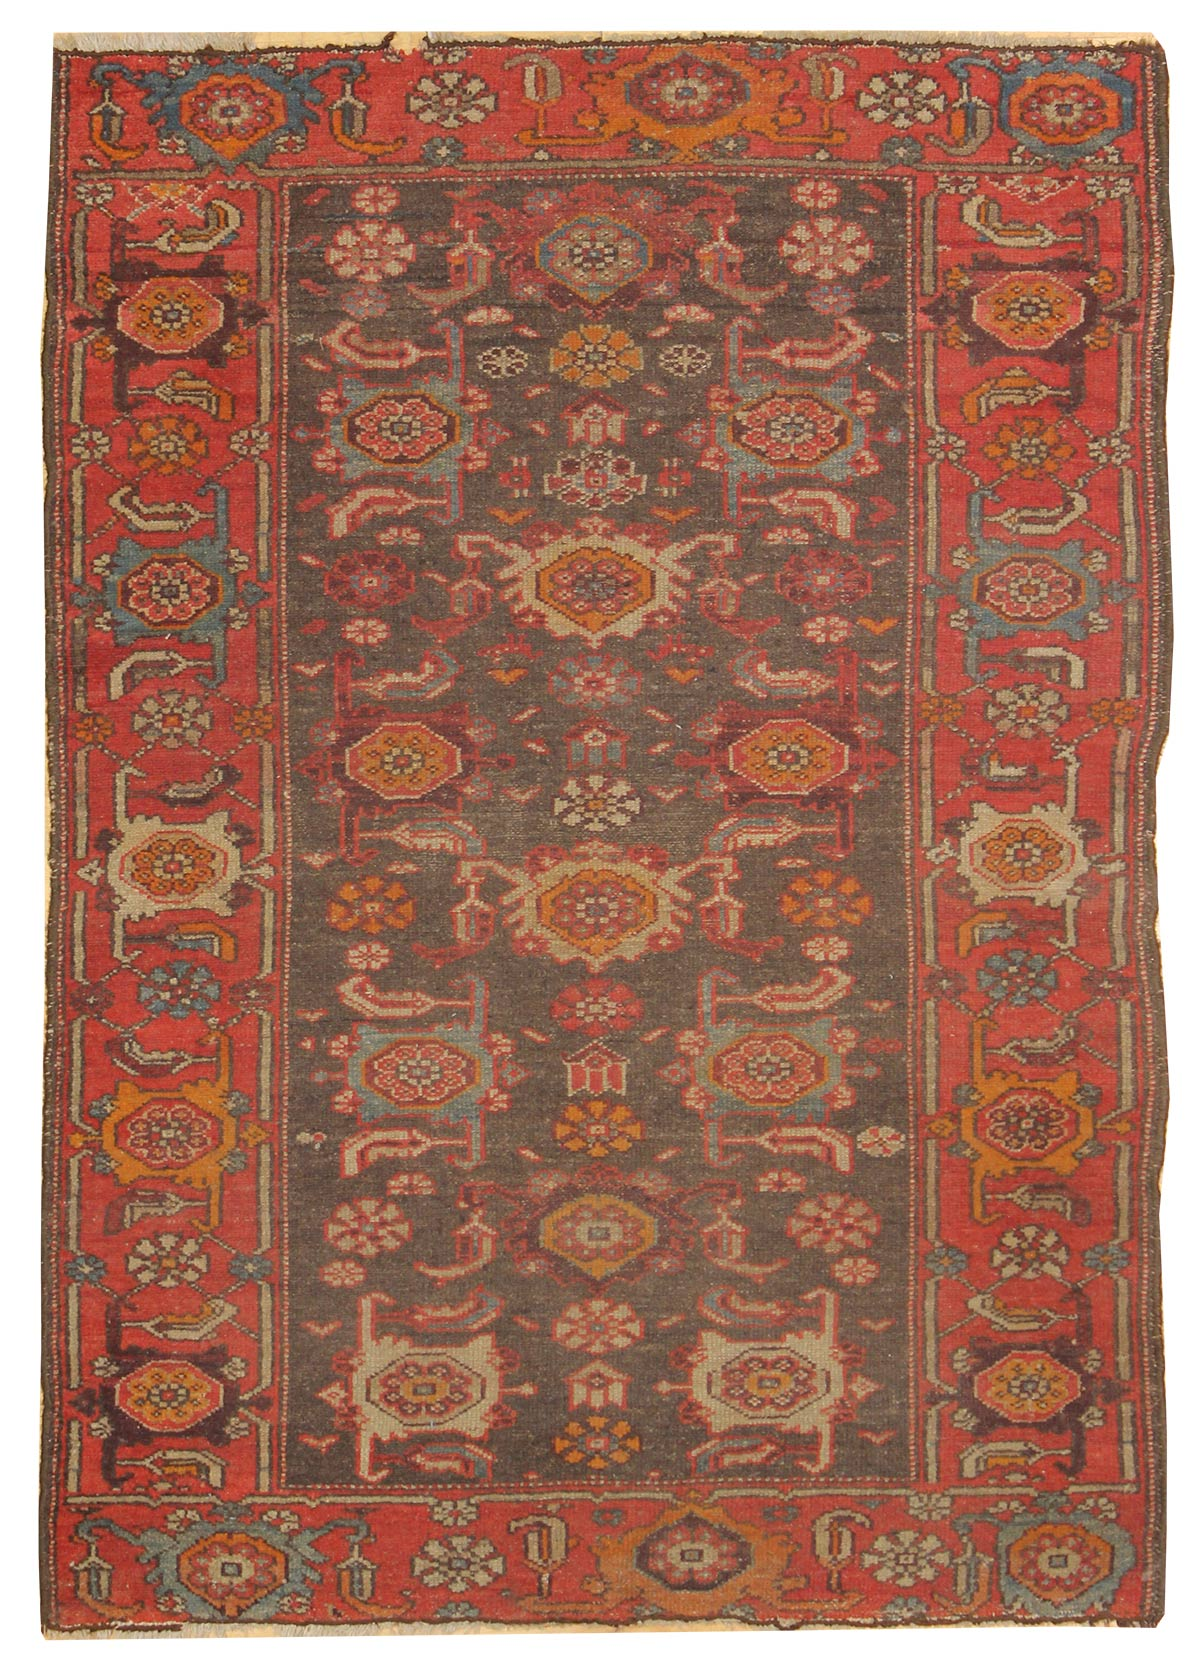 Antique Malayer Handwoven Traditional Rug